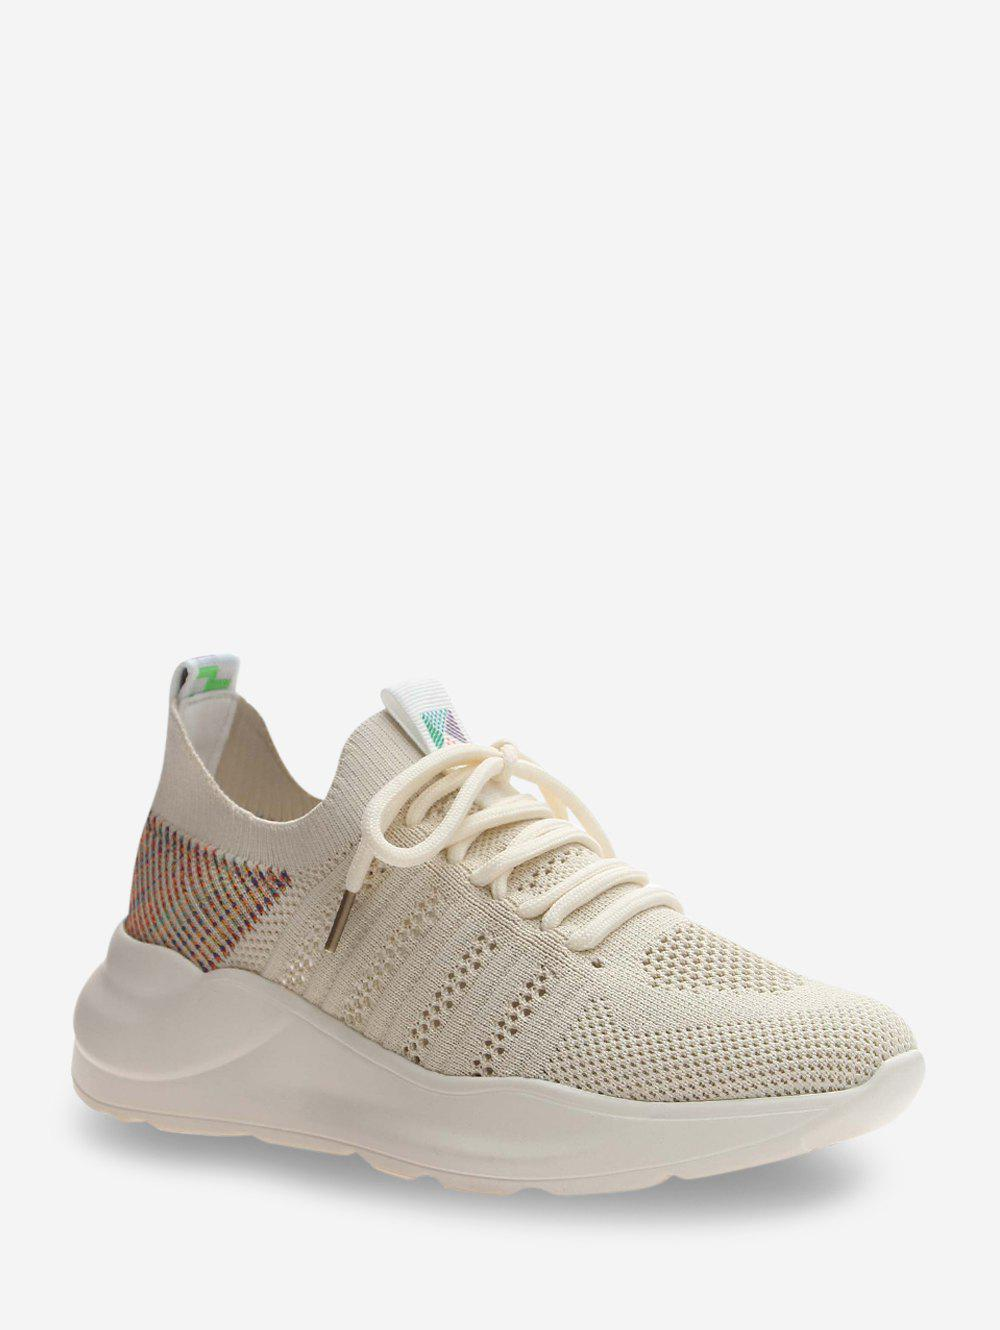 Store Breathable Mesh Comfortable Outdoor Sneakers